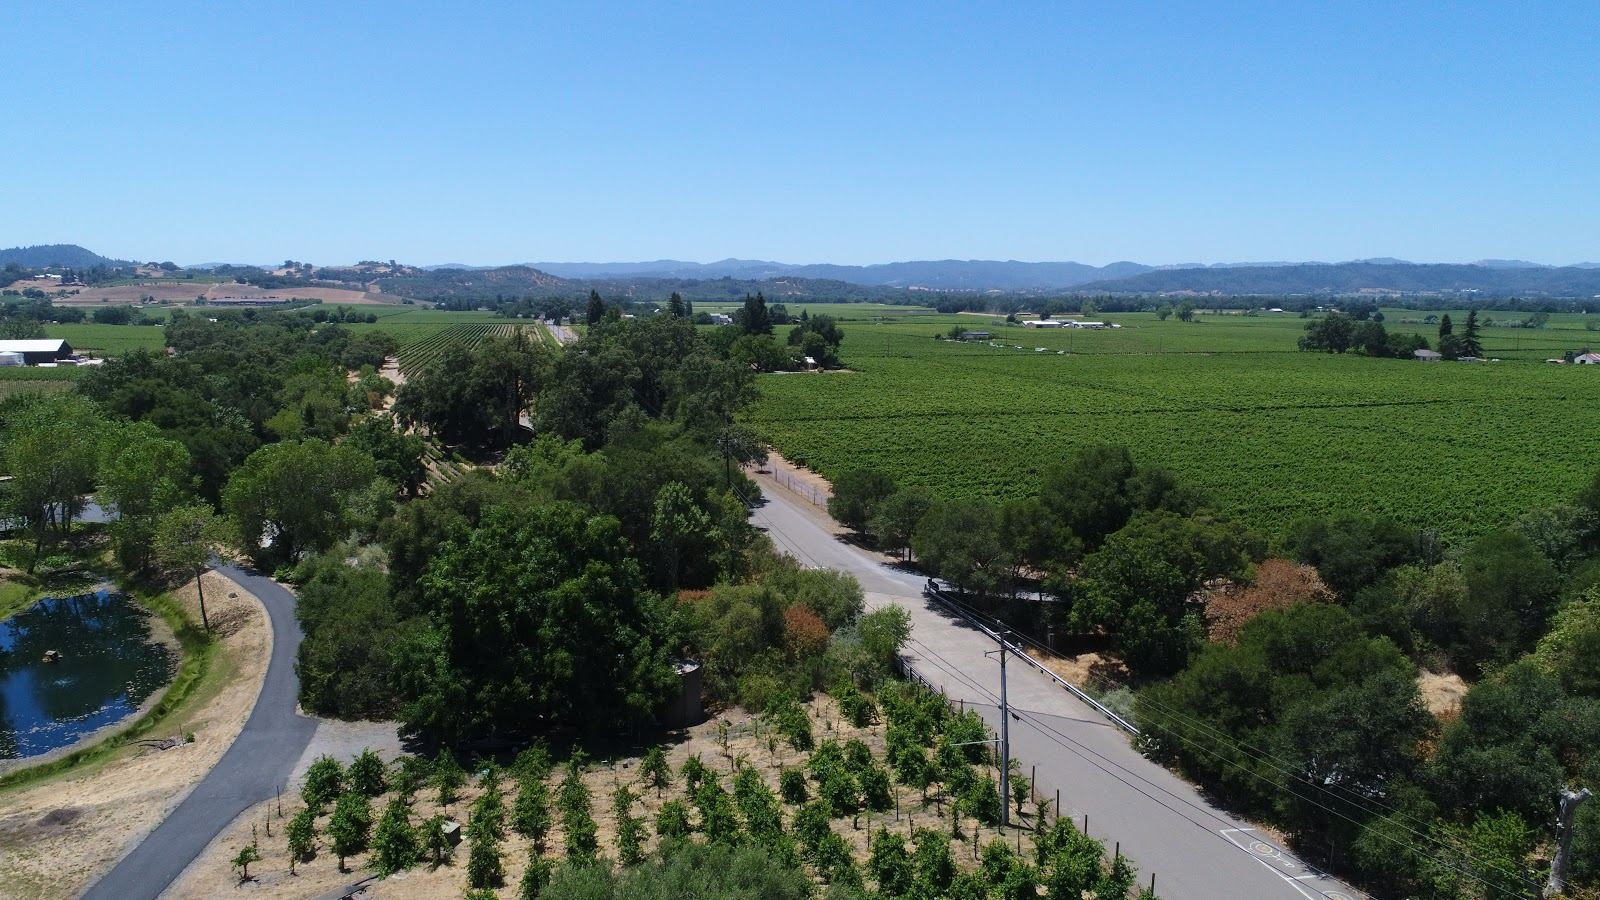 Bike ride up Pine Flat Road - aerial drone photo of start and vineyards